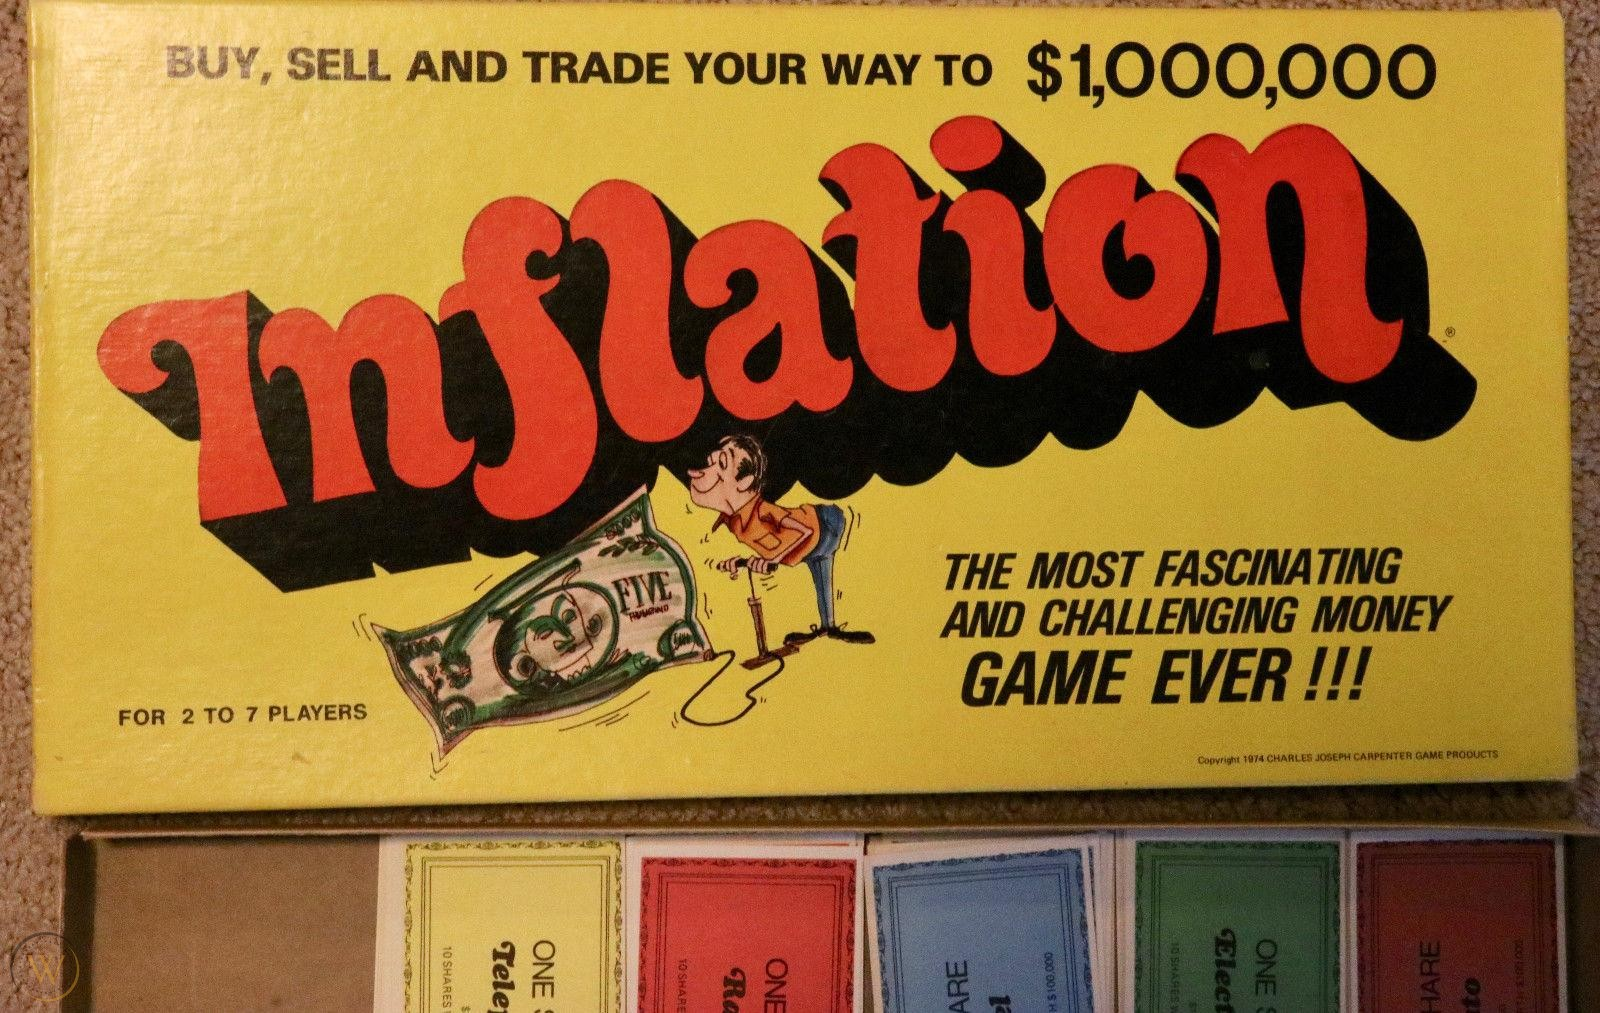 The Inflation Game